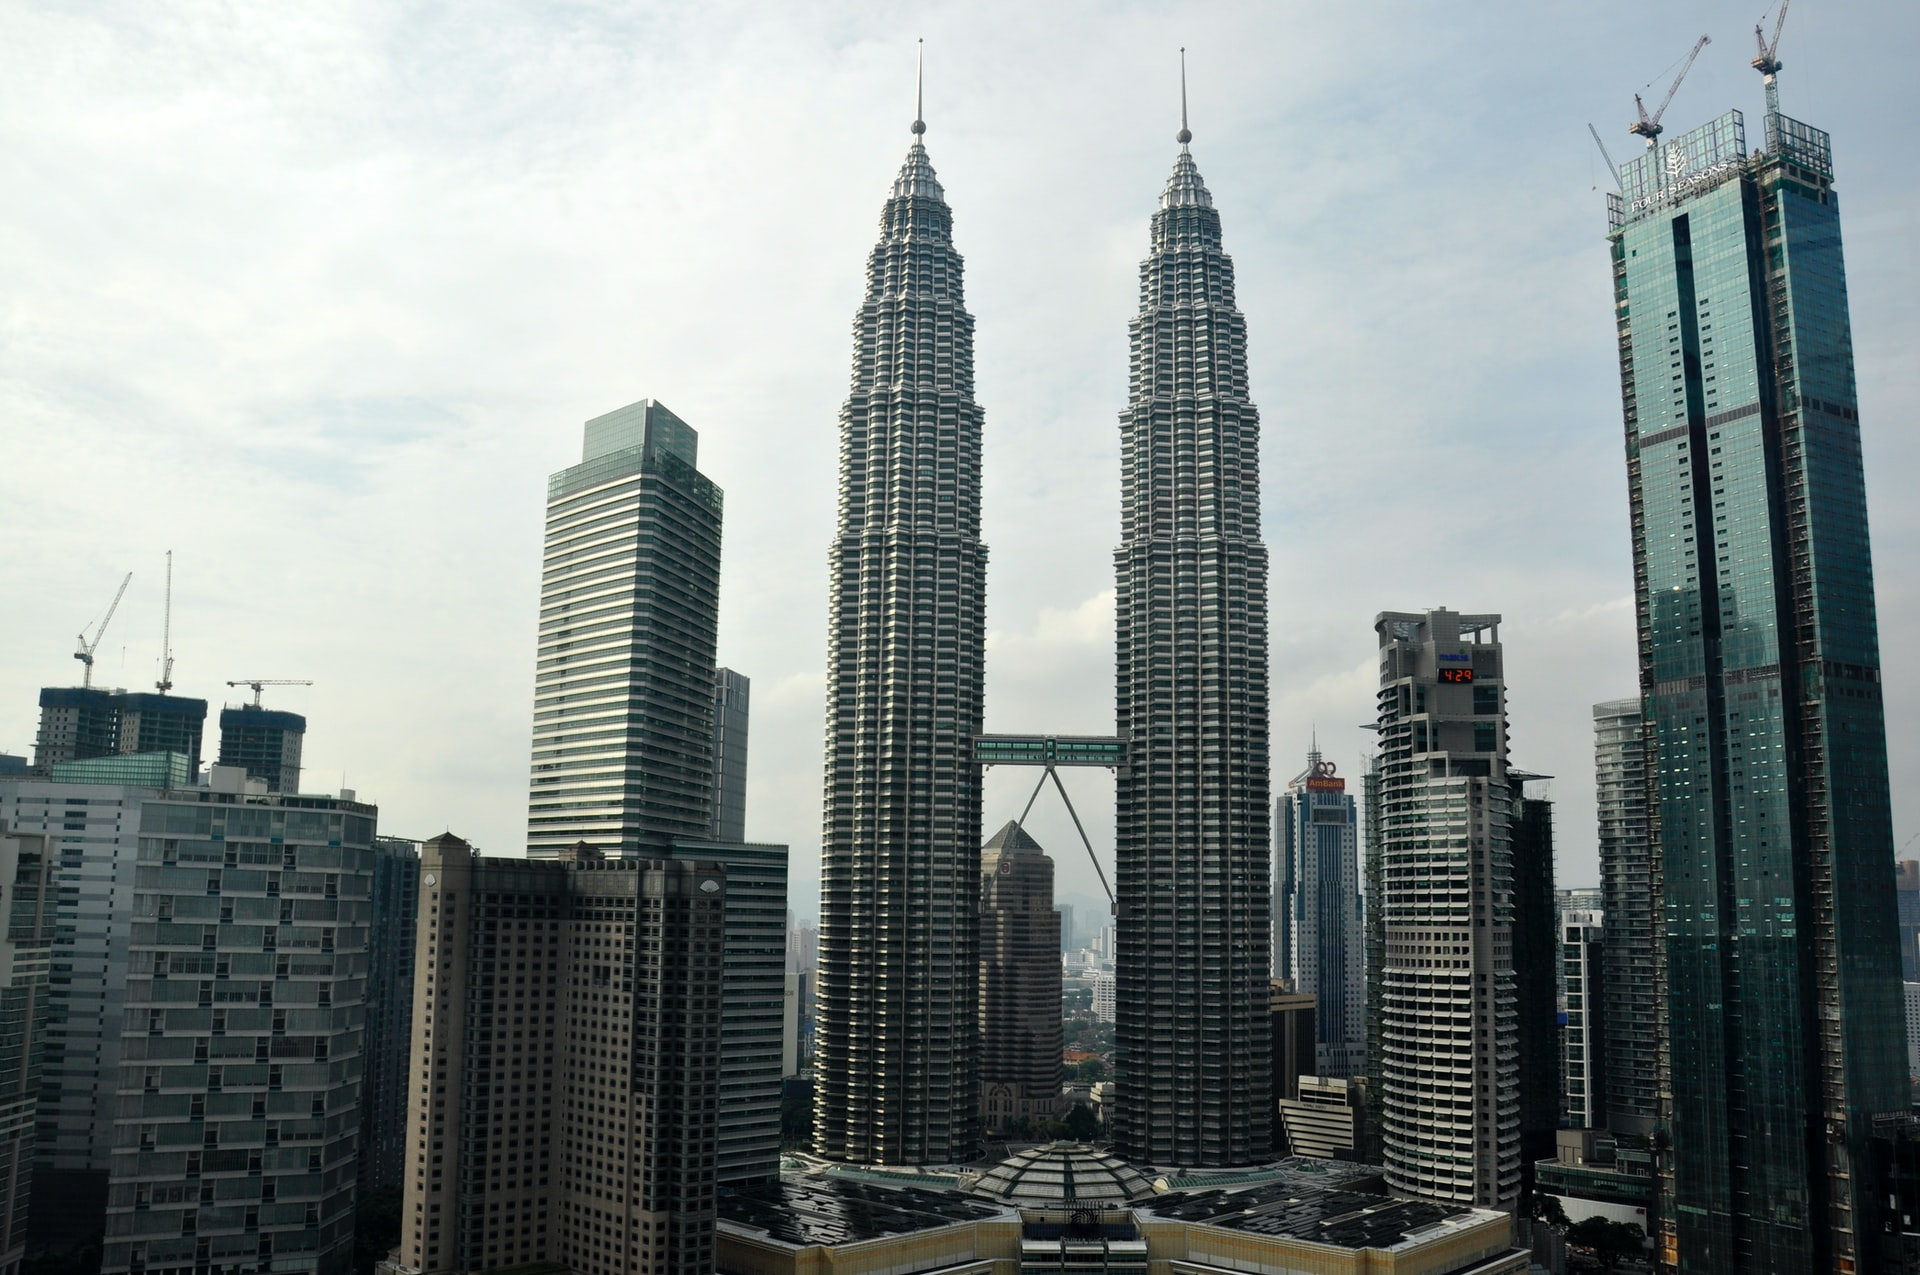 Malaysia is getting hotter.